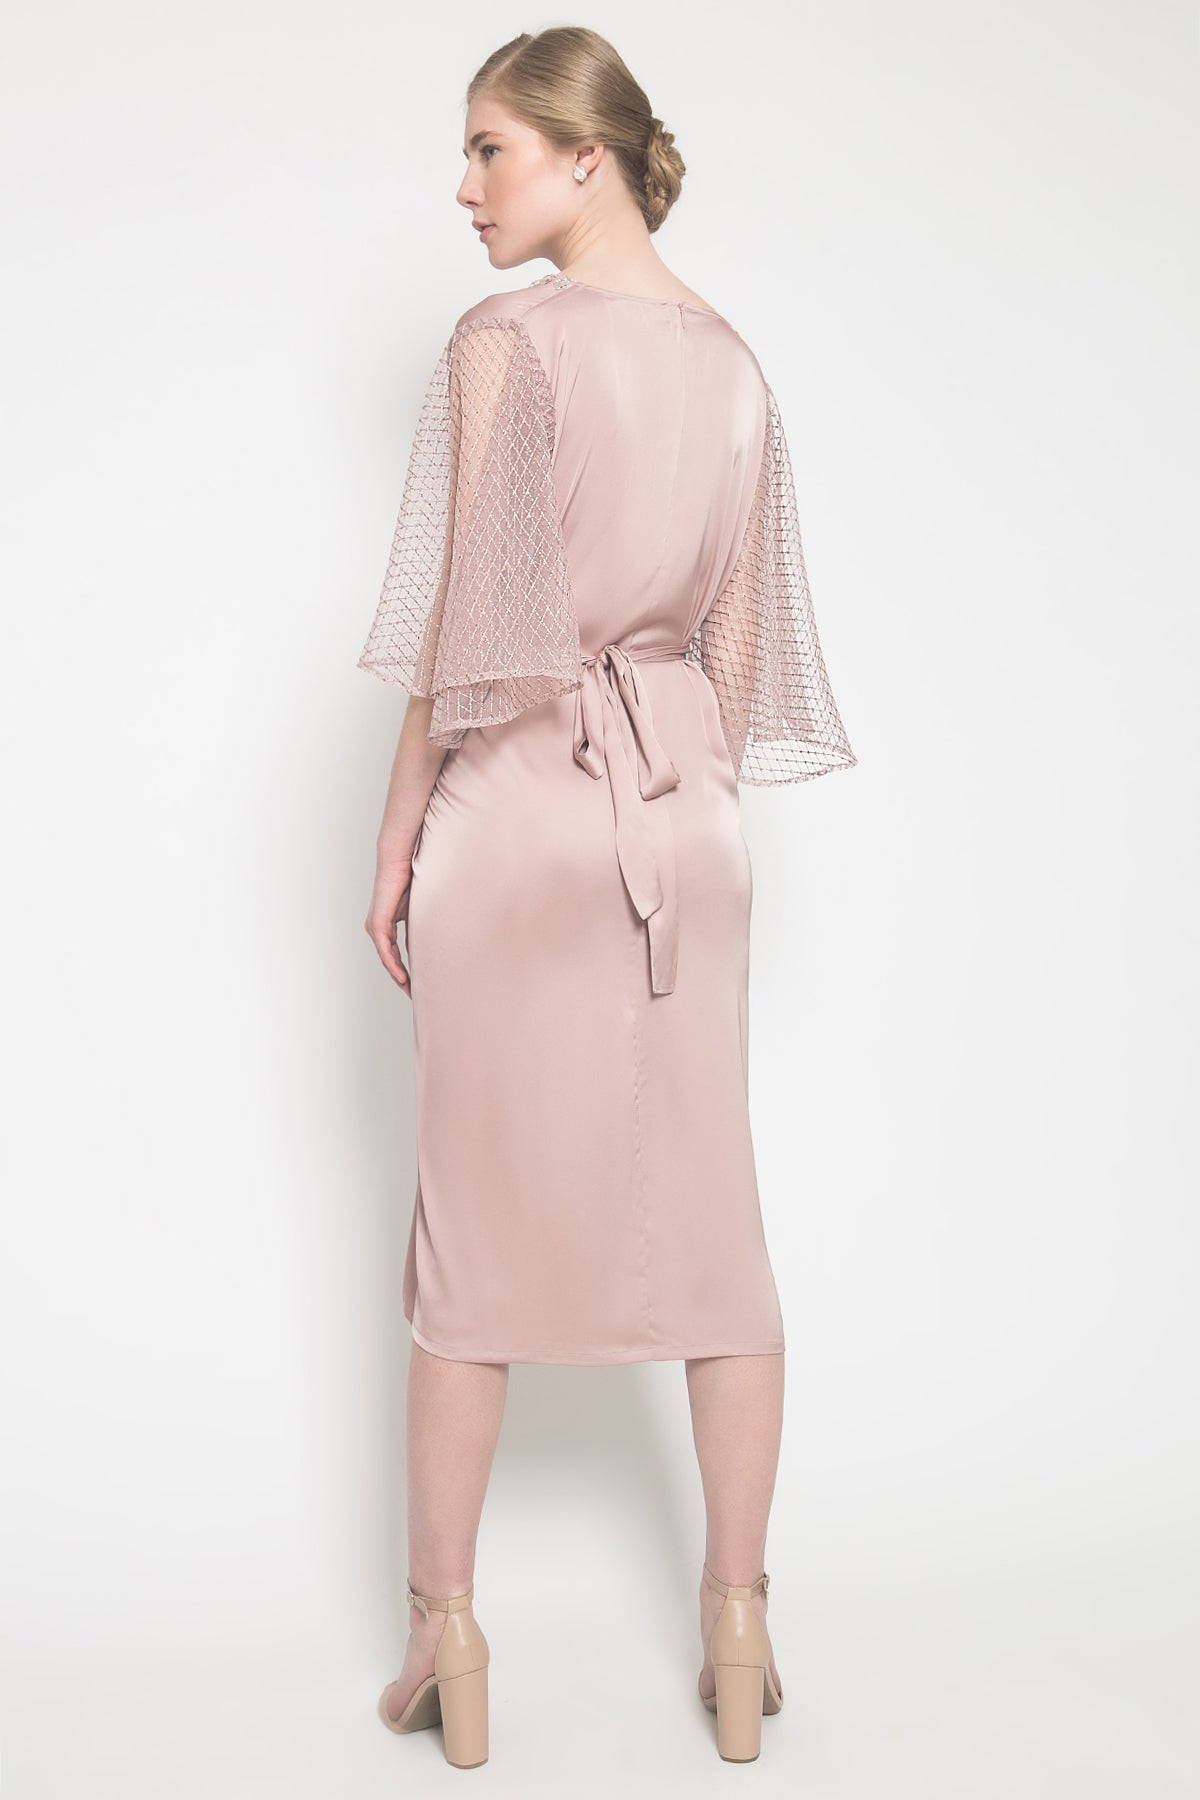 Nerra Kaftan in Mauvy Pink